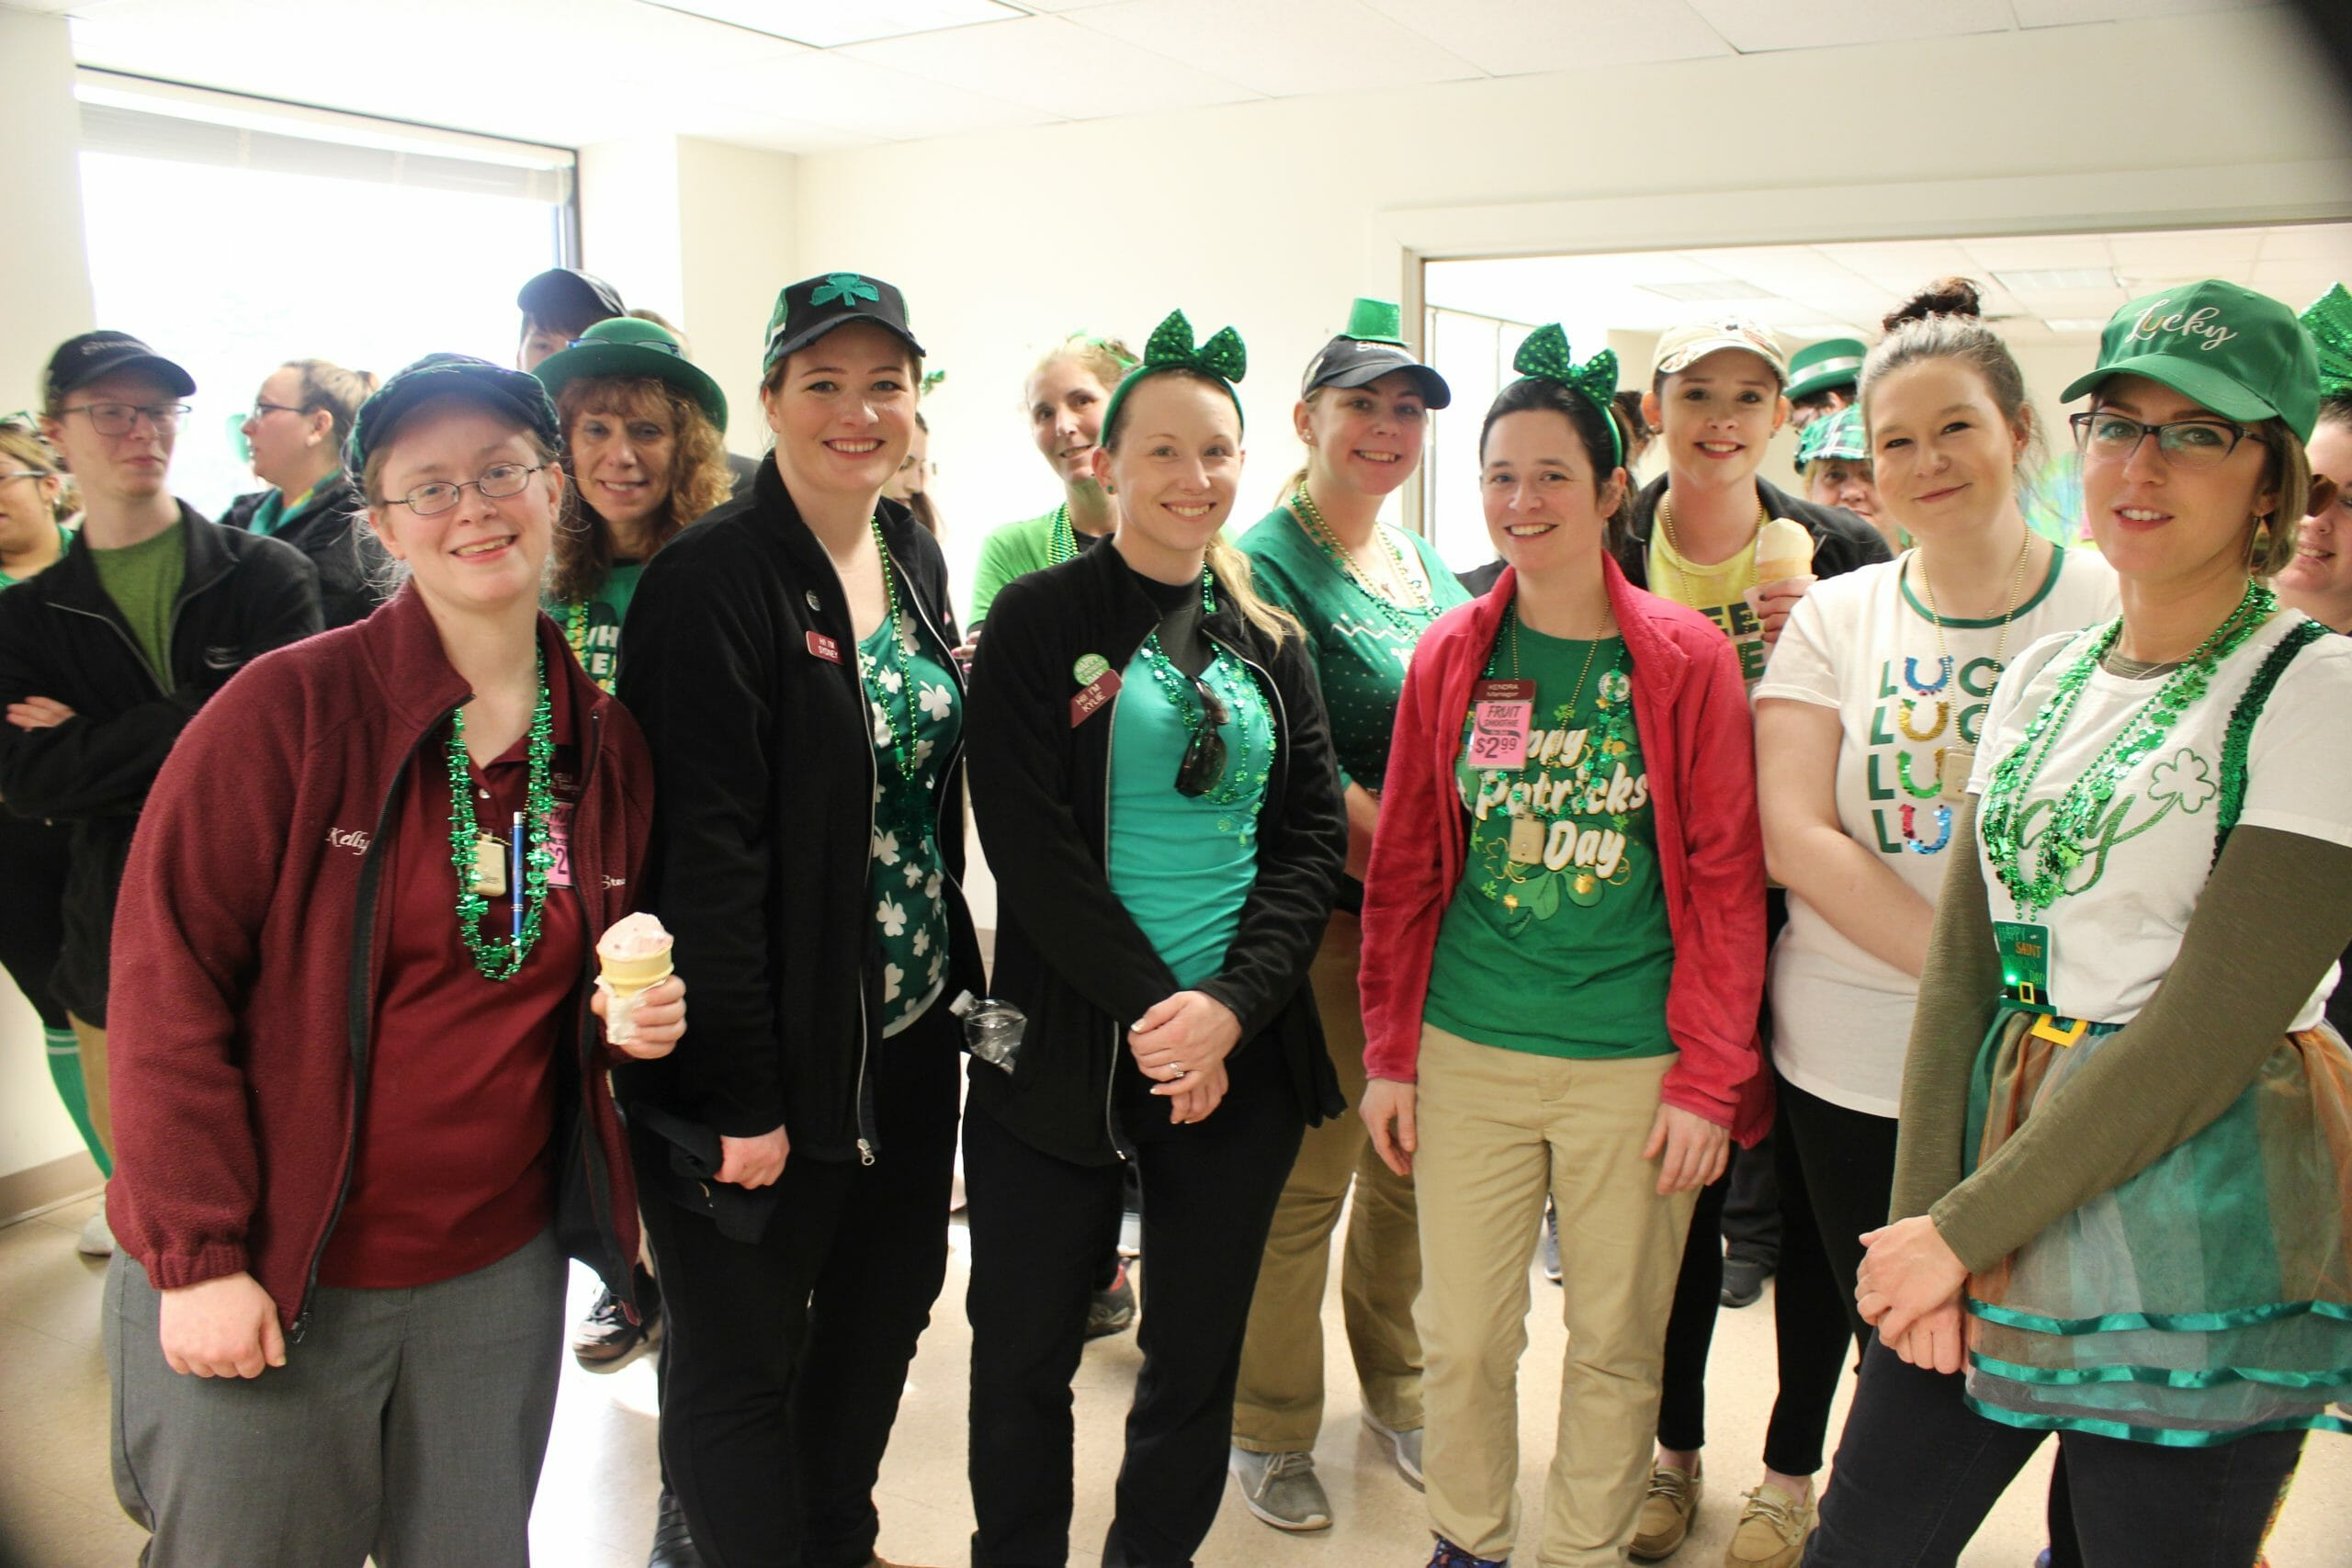 A group of partners dressed in green with st patricks day accessories